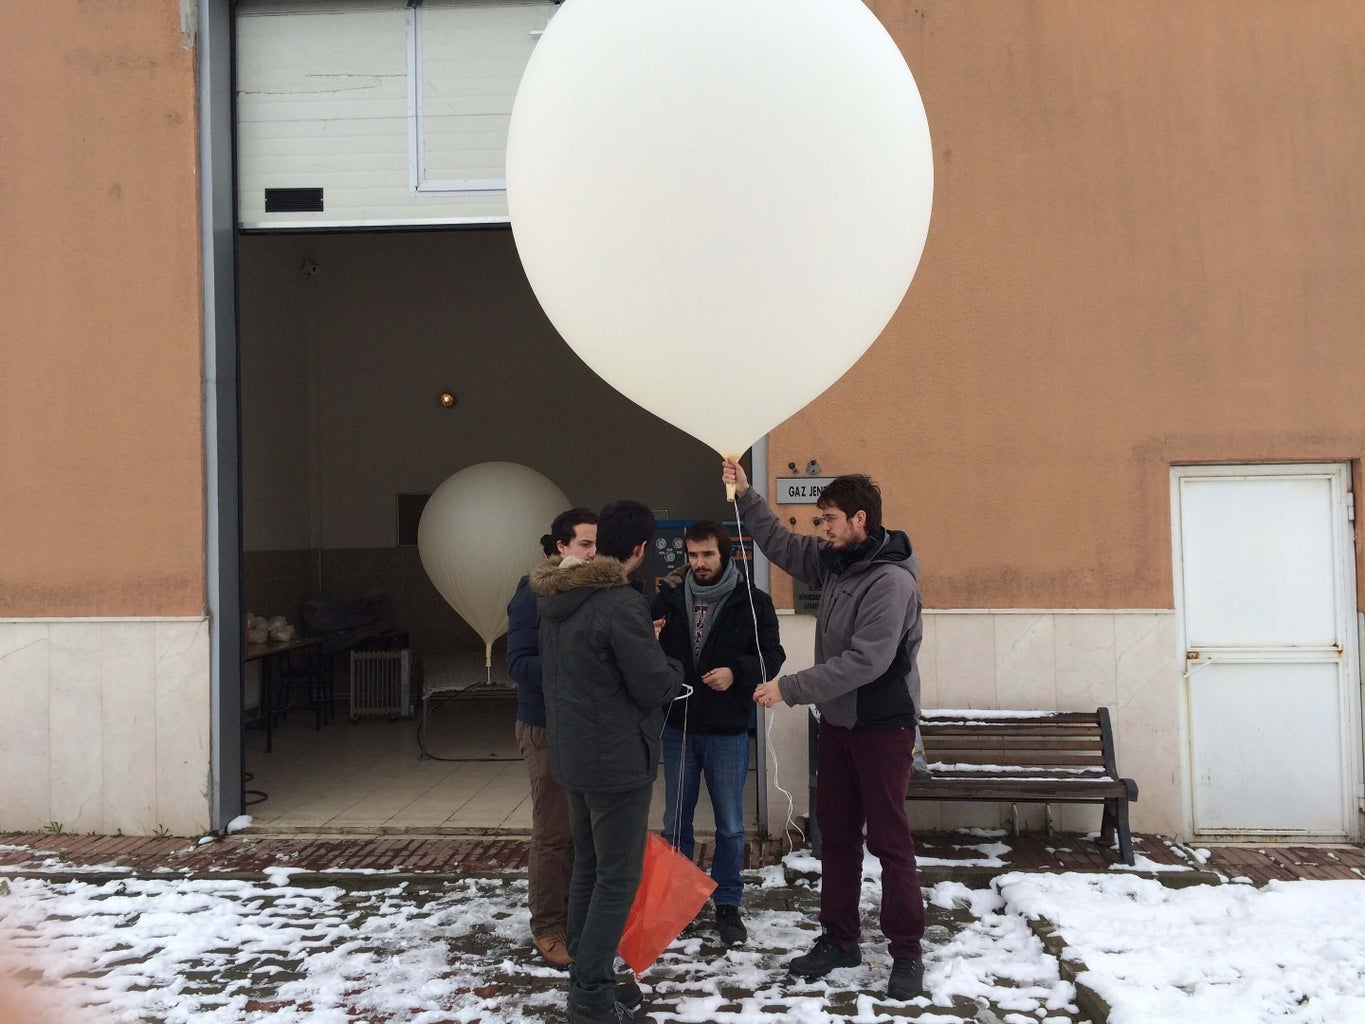 How Can You Make Your Balloon-Sat ?